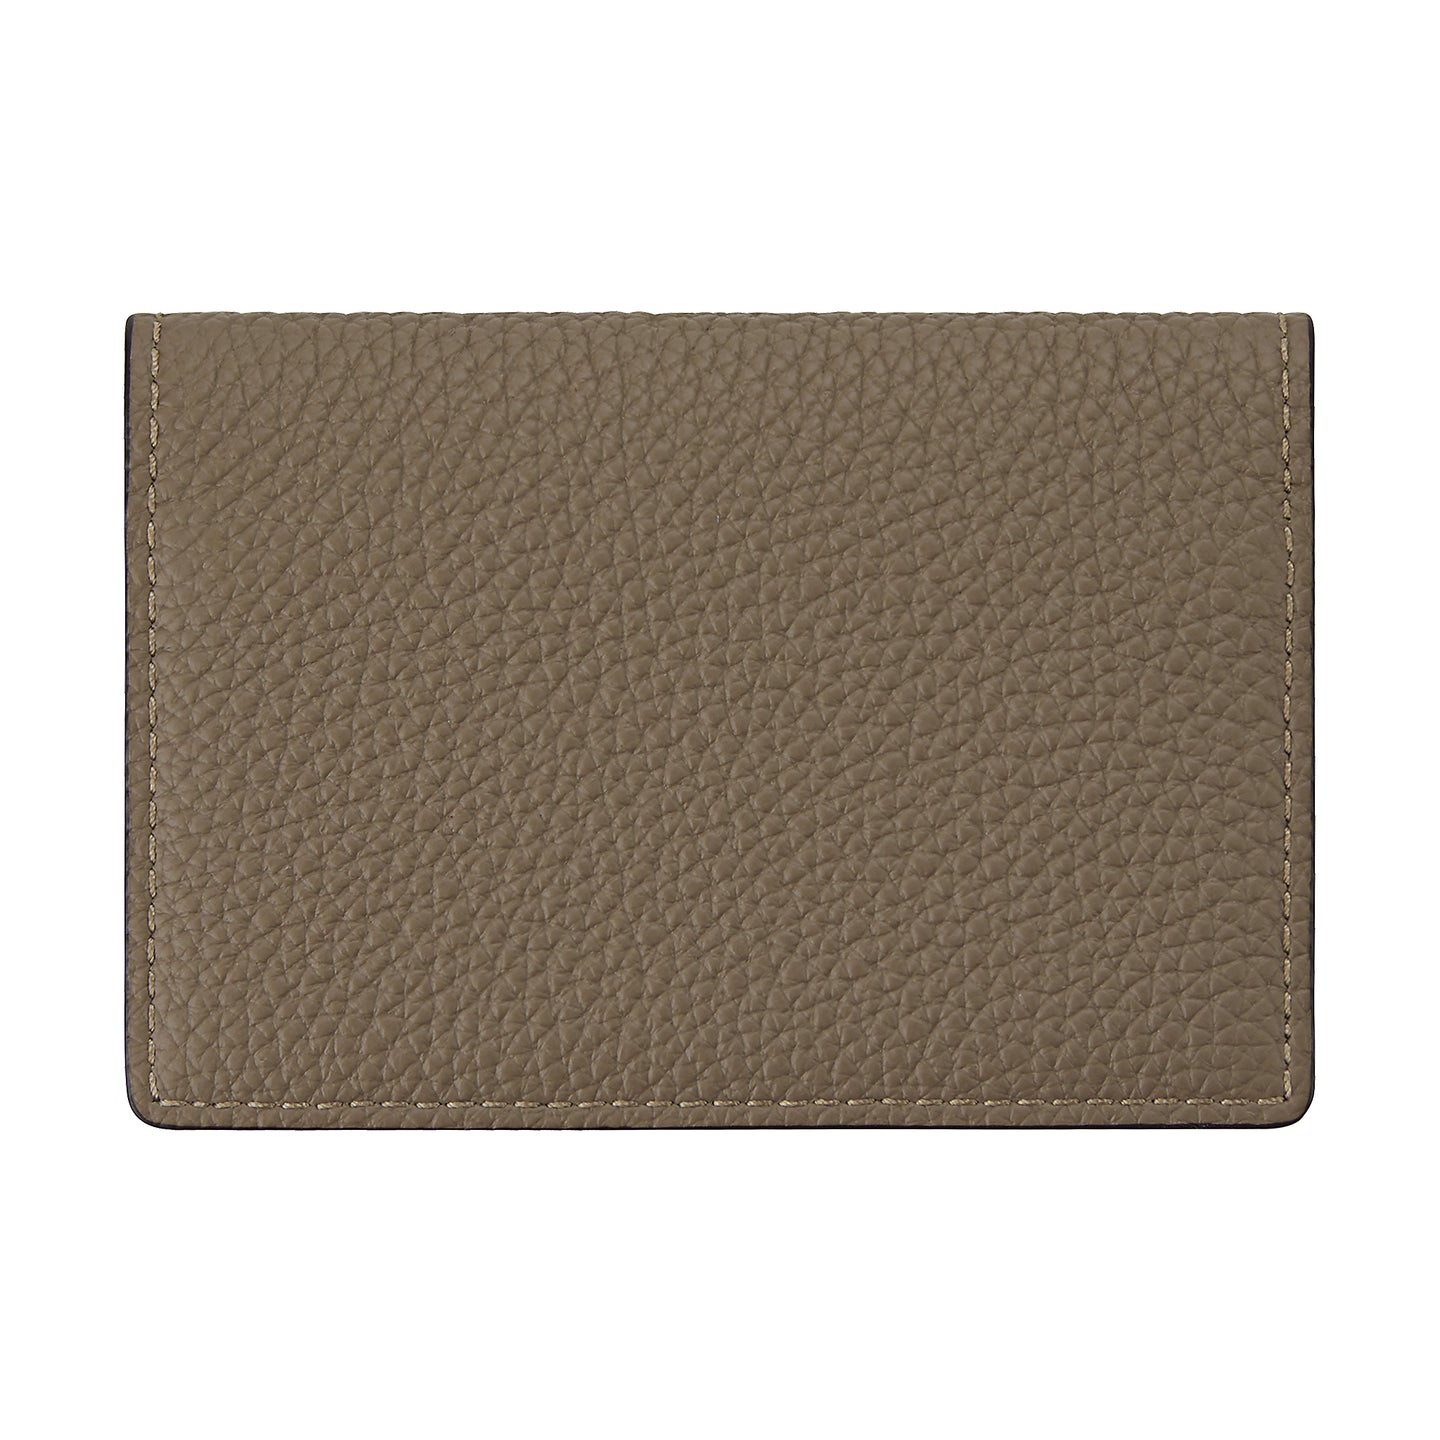 Forb Card Case Beige